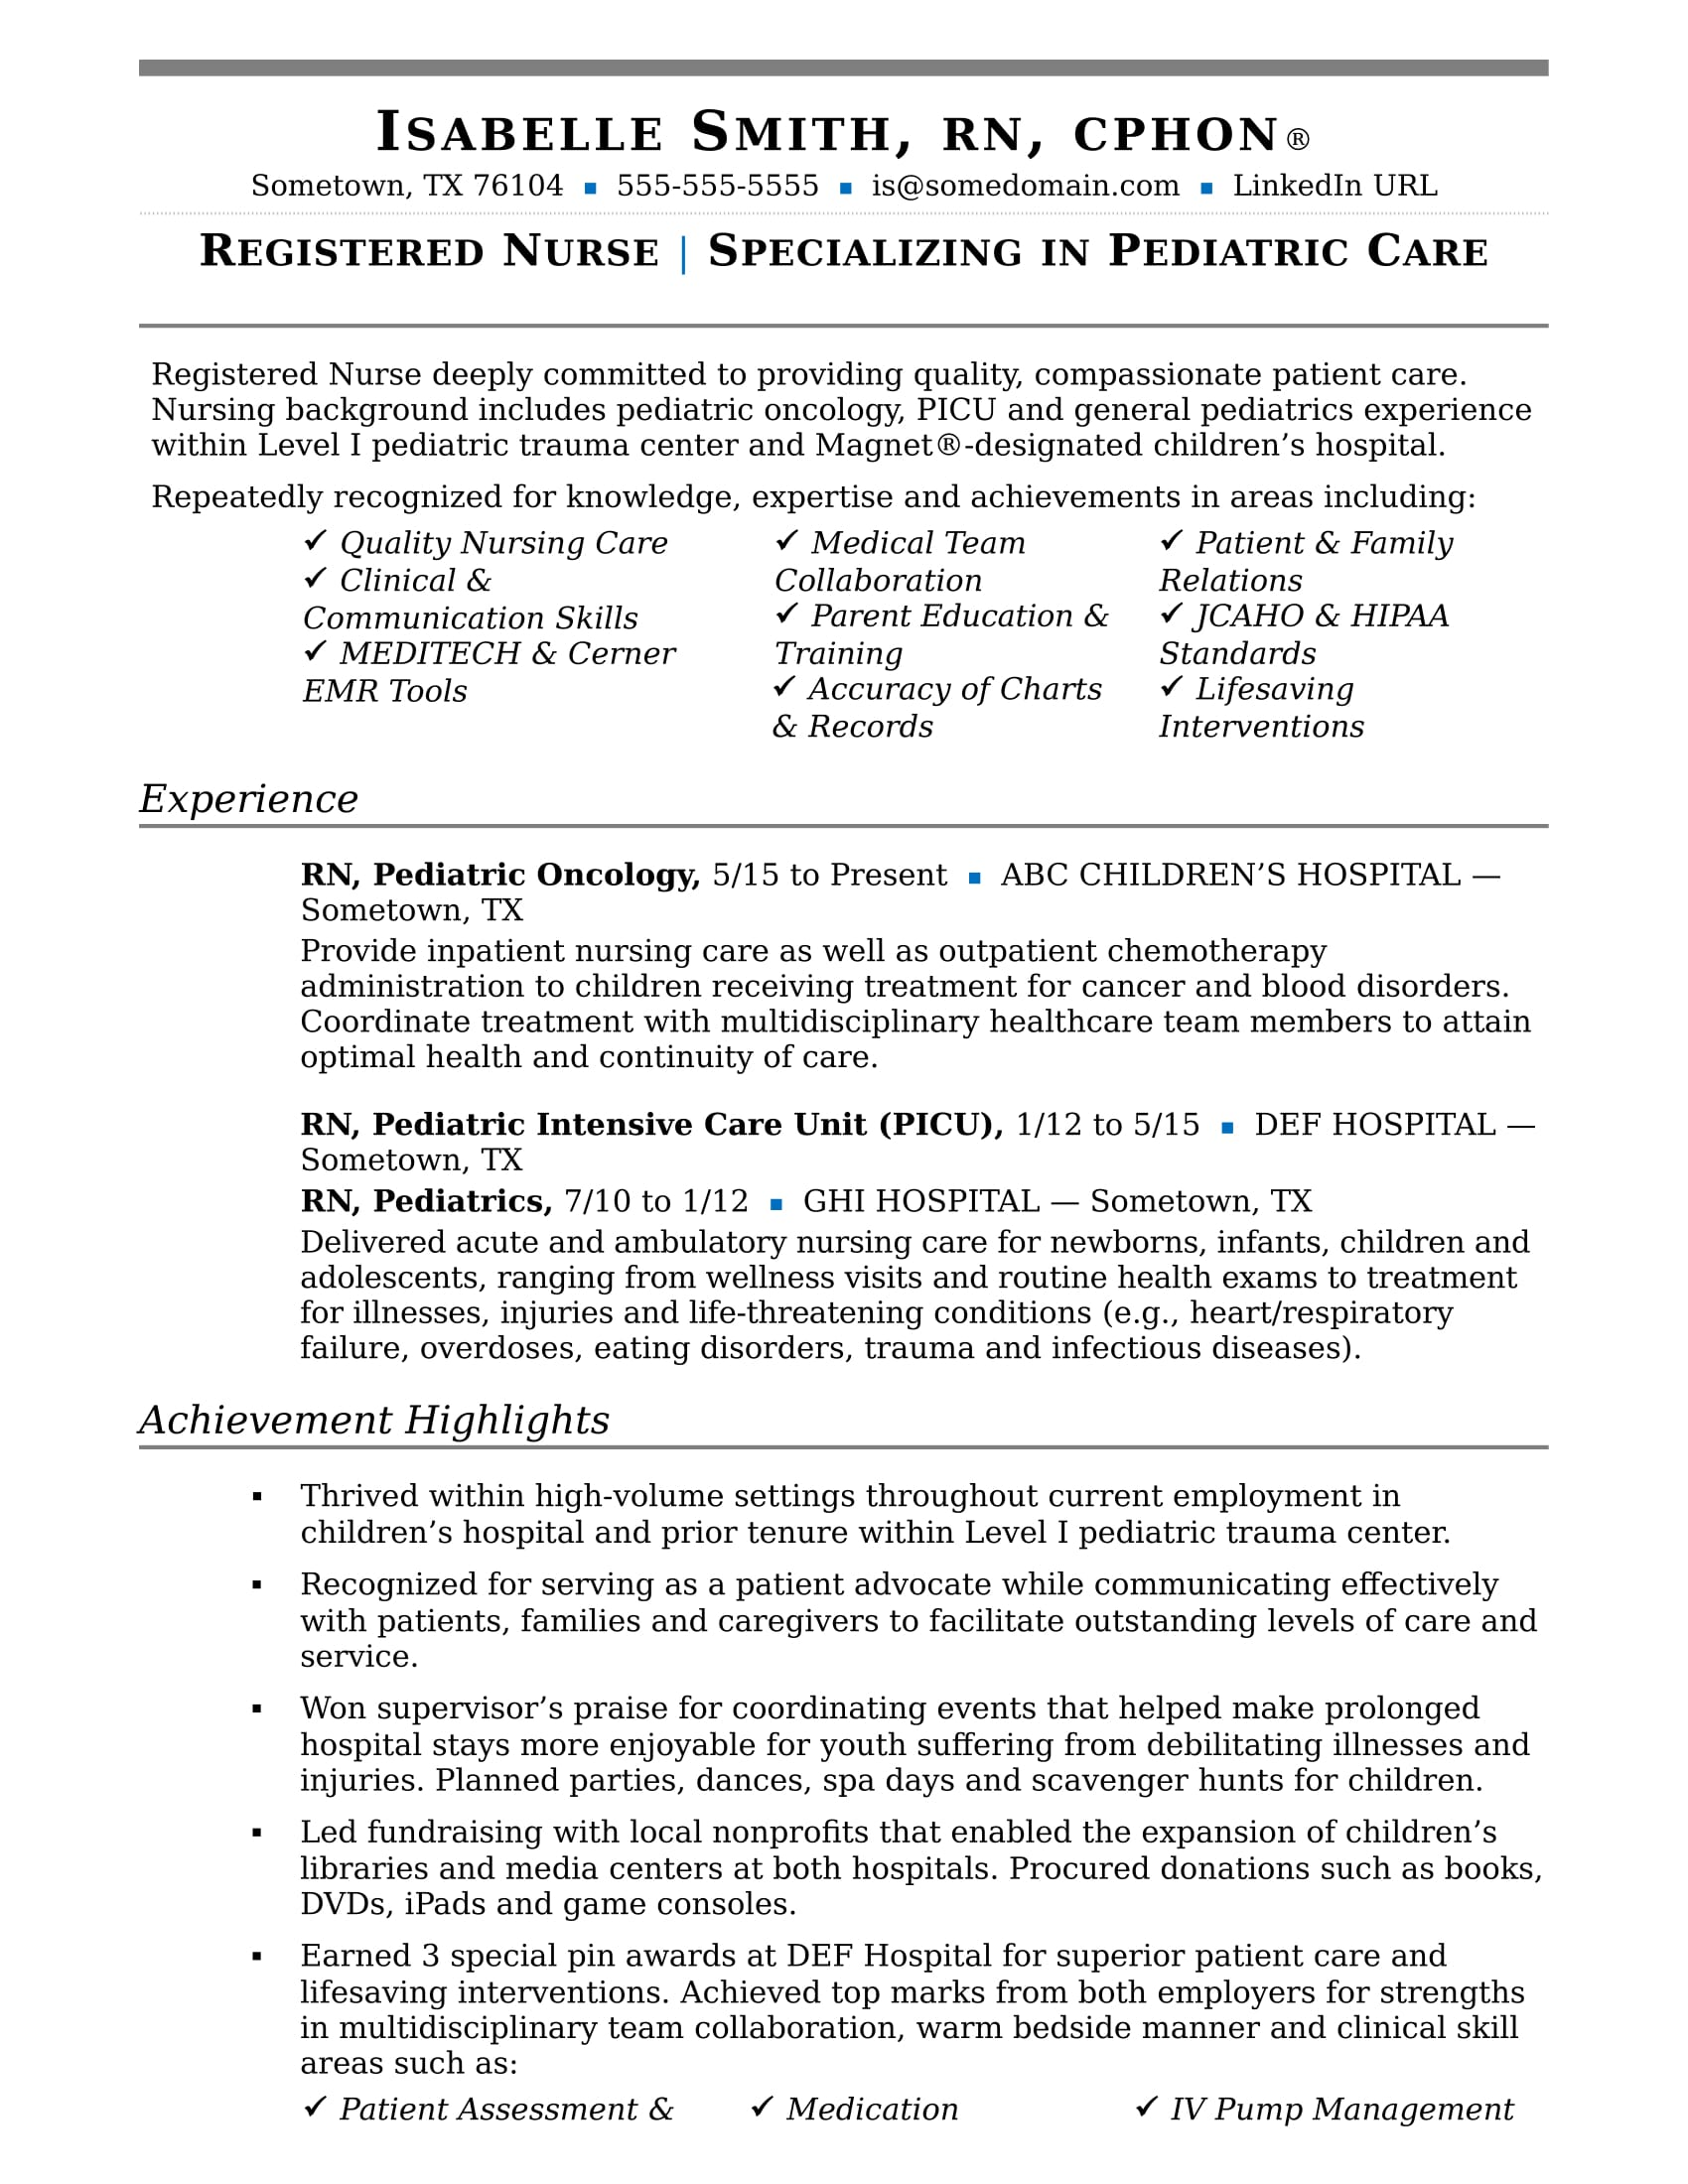 nurse resume sample monster nursing examples with clinical experience leasing specialist Resume Nursing Resume Examples With Clinical Experience